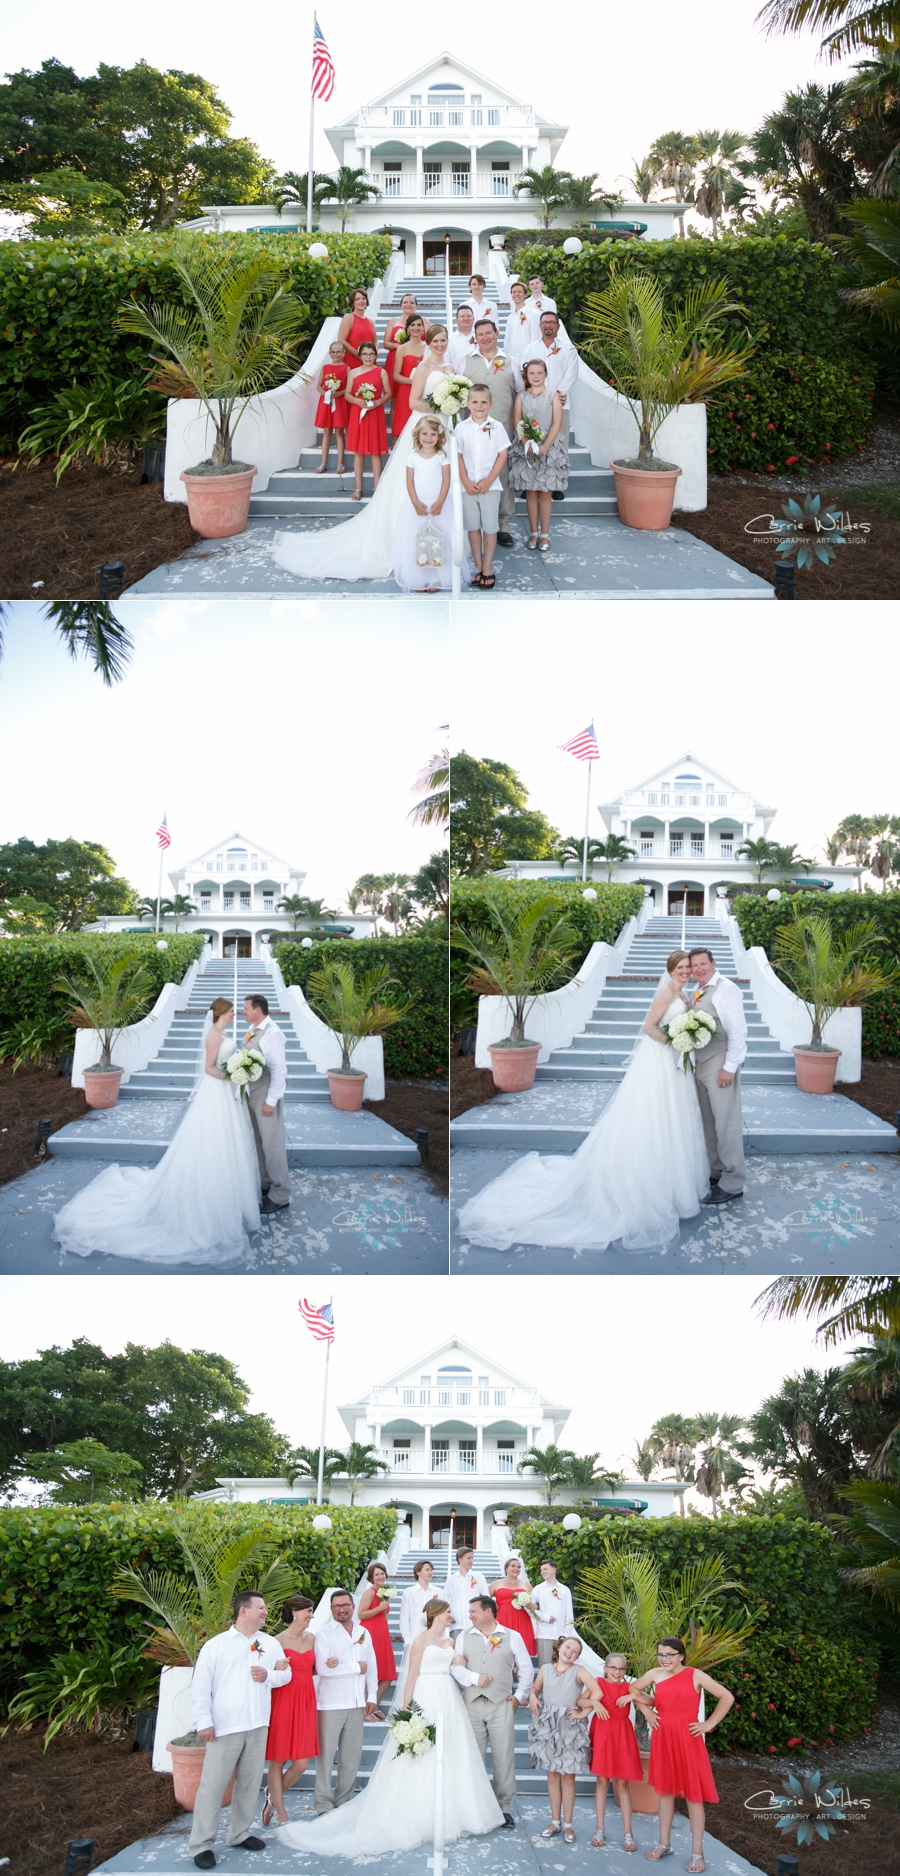 6_27_15 Useppa Island Wedding_0022.jpg